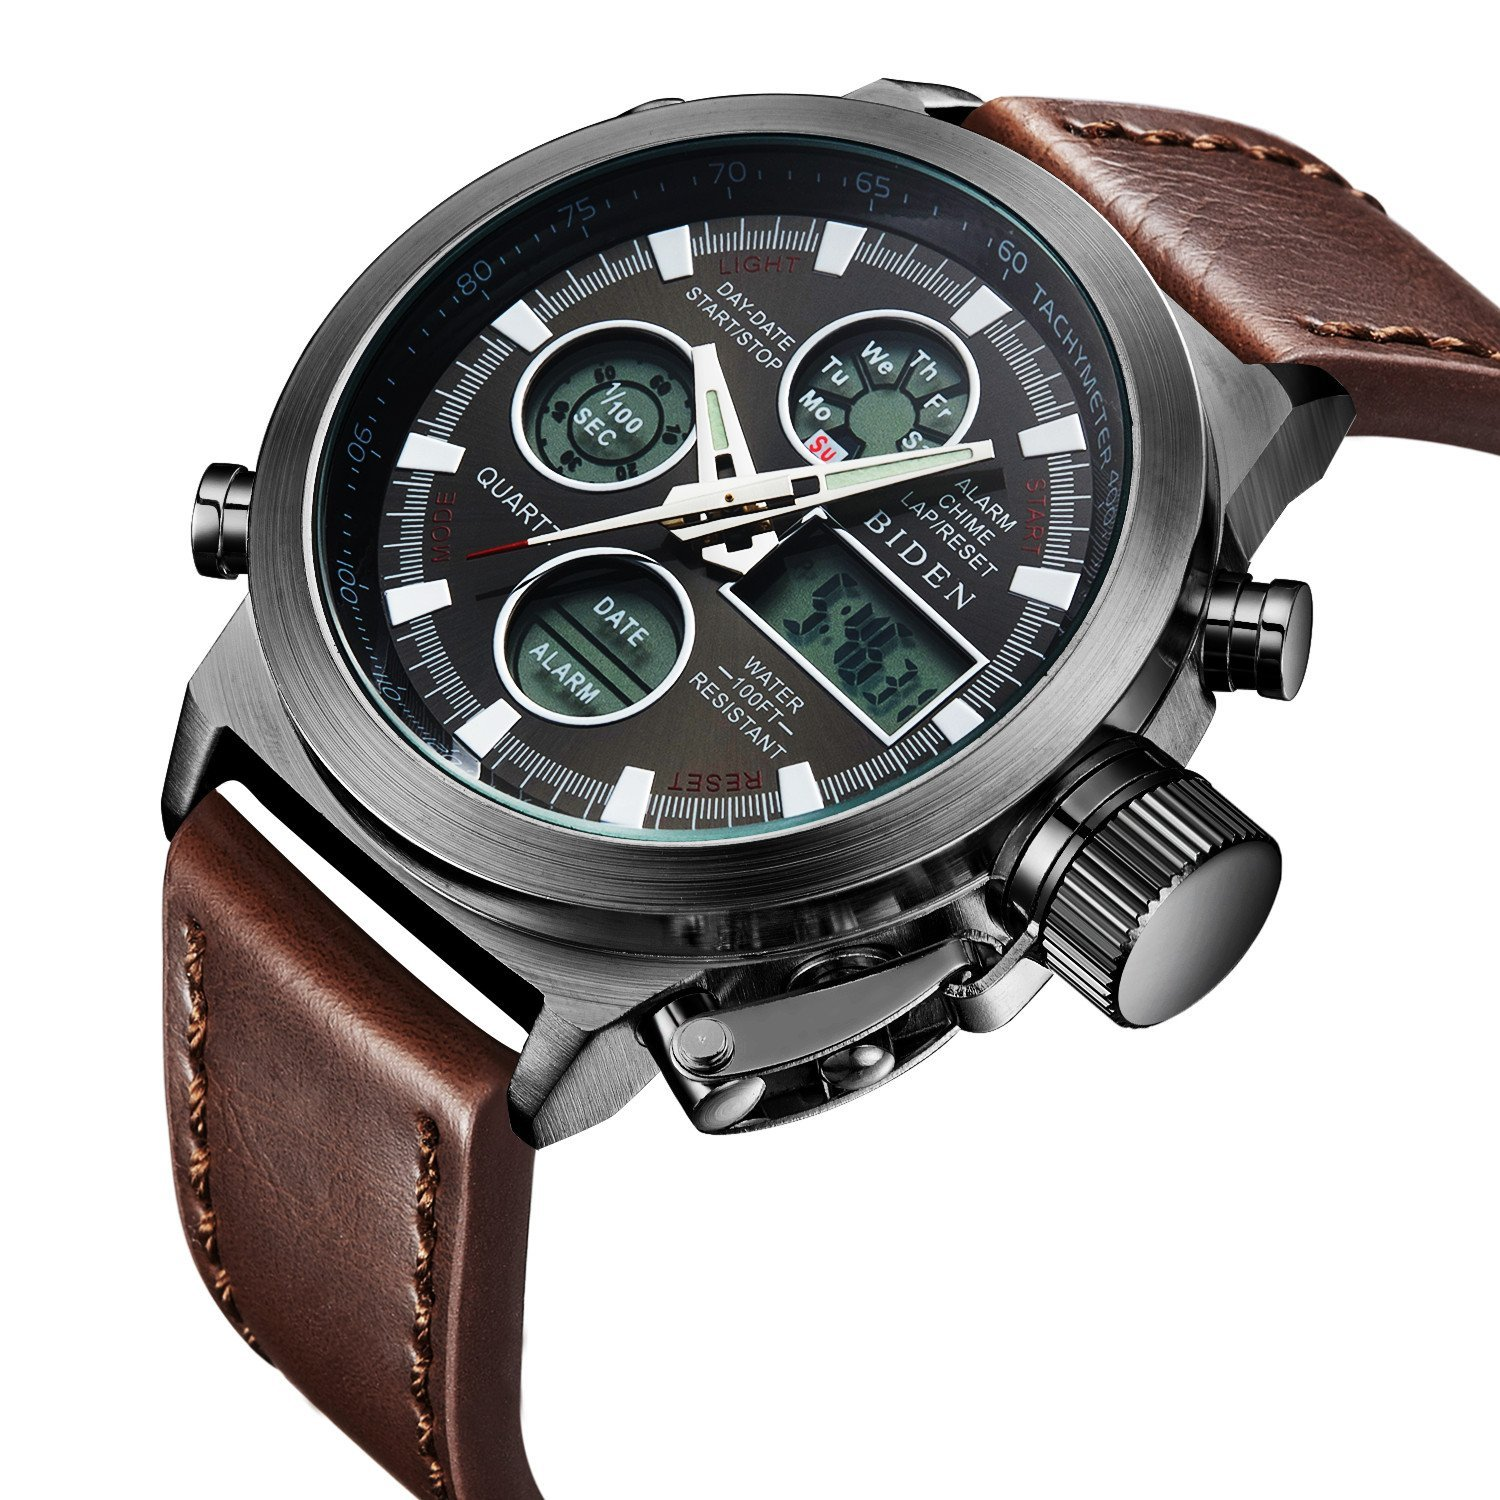 Digital watches for men – Classic, Trendy and Elegant